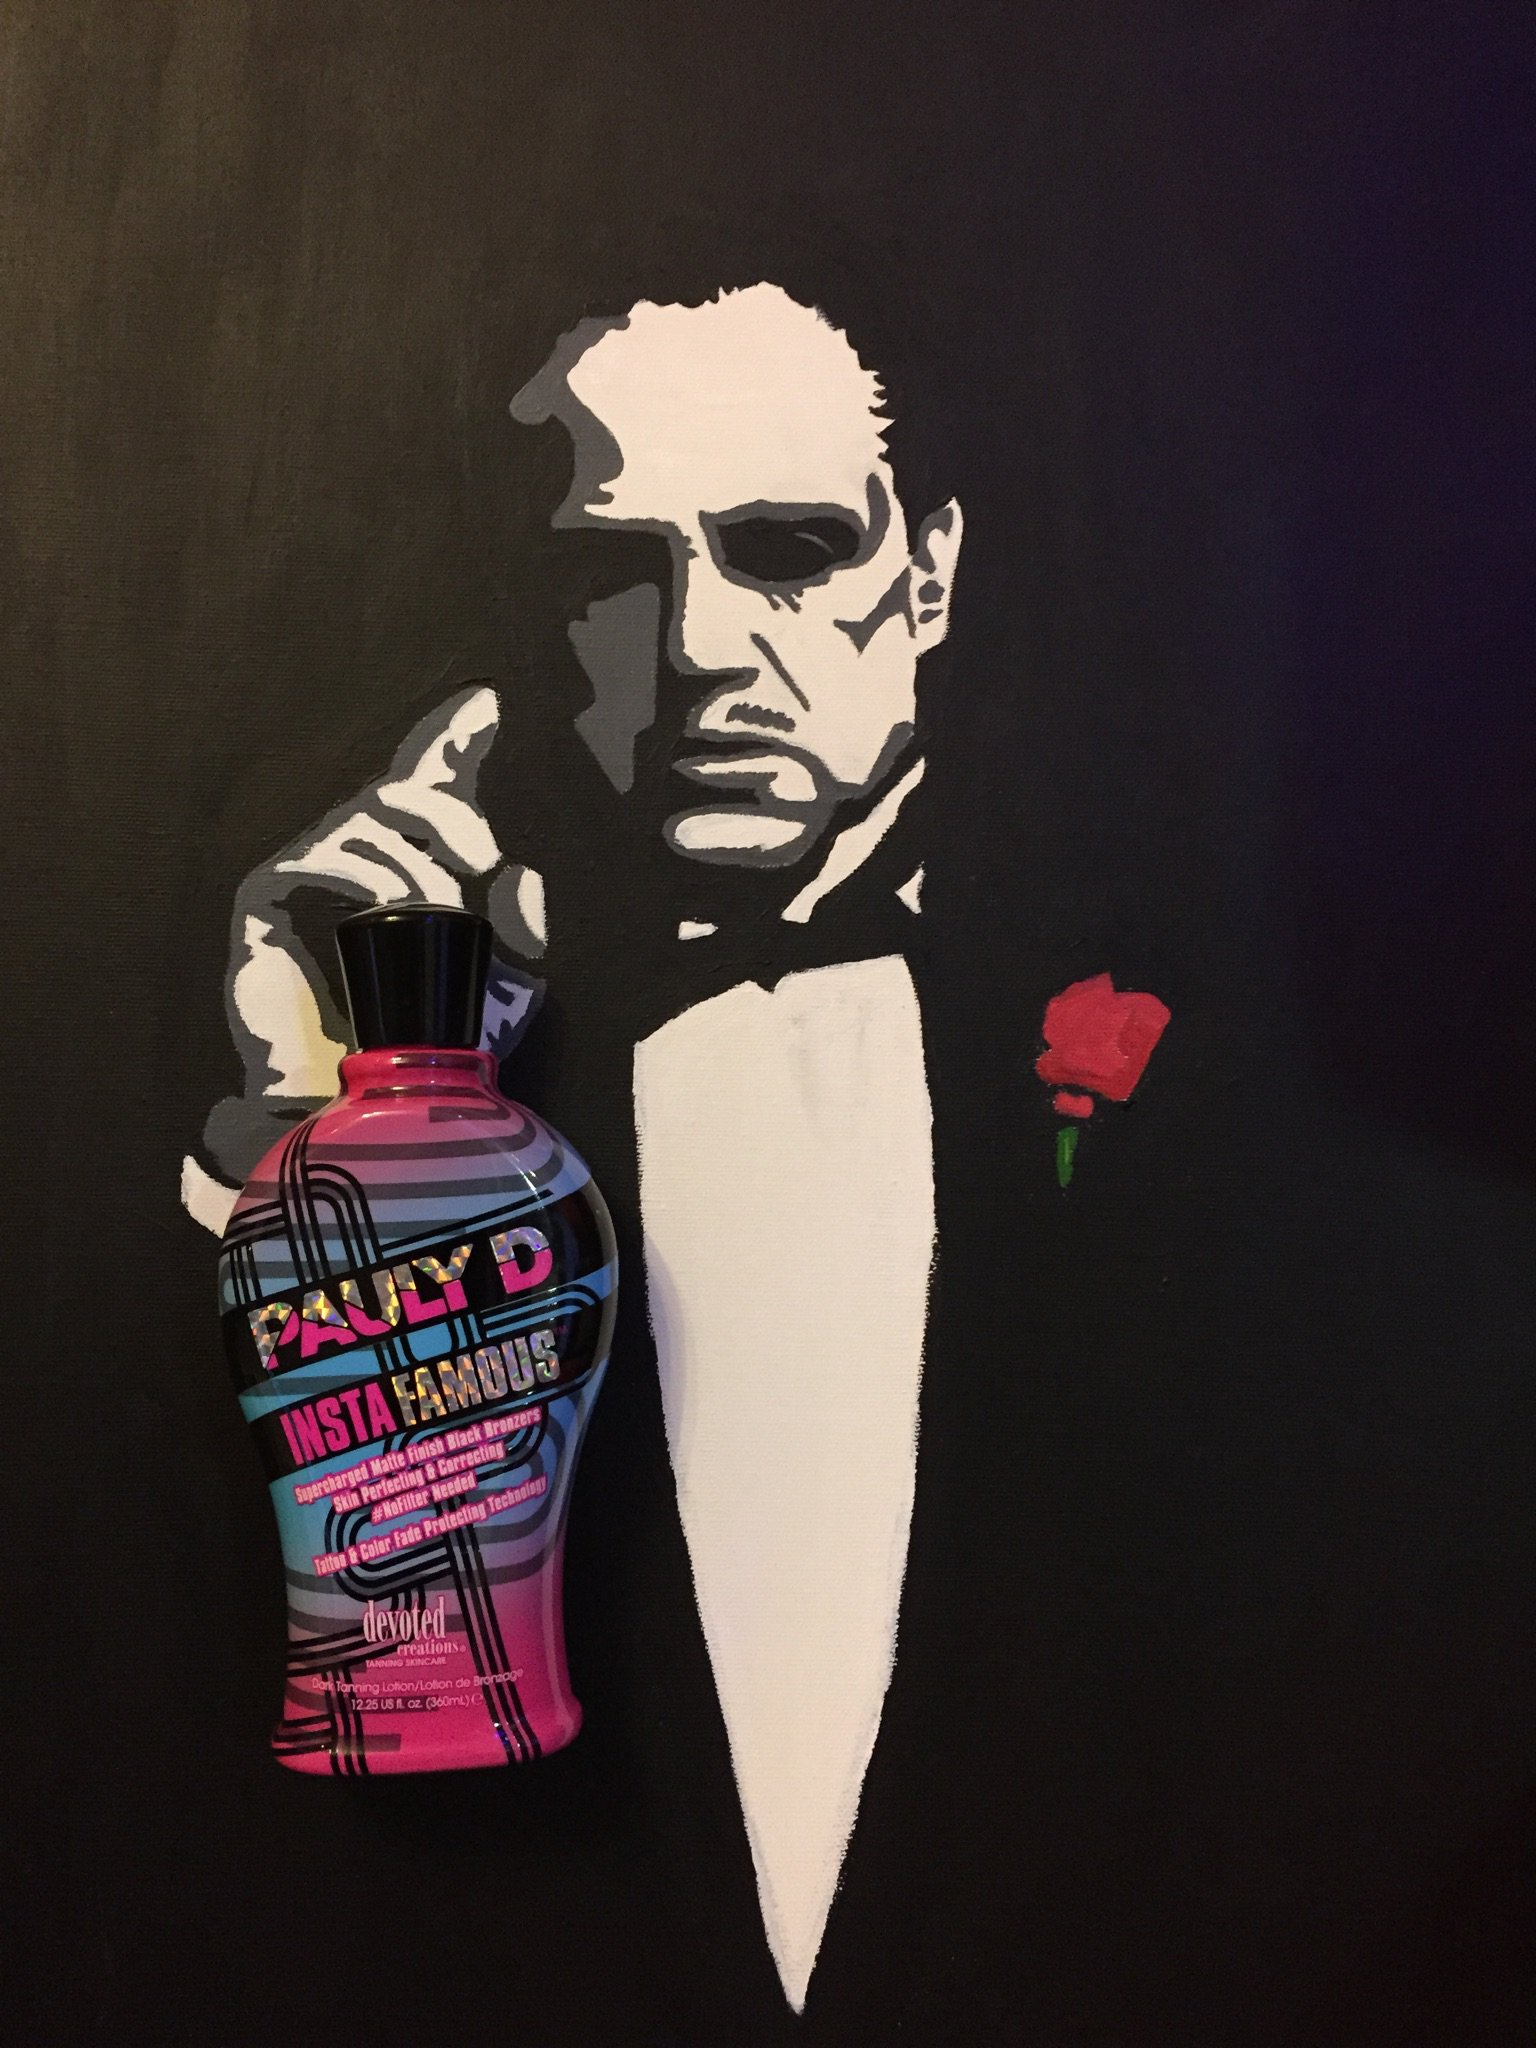 RT @BodyBINGTANNING: We just restocked with @DJPaulyD 's tanning lotion, Instafamous!  Best bronzer out there. @devotedcreation https://t.c…